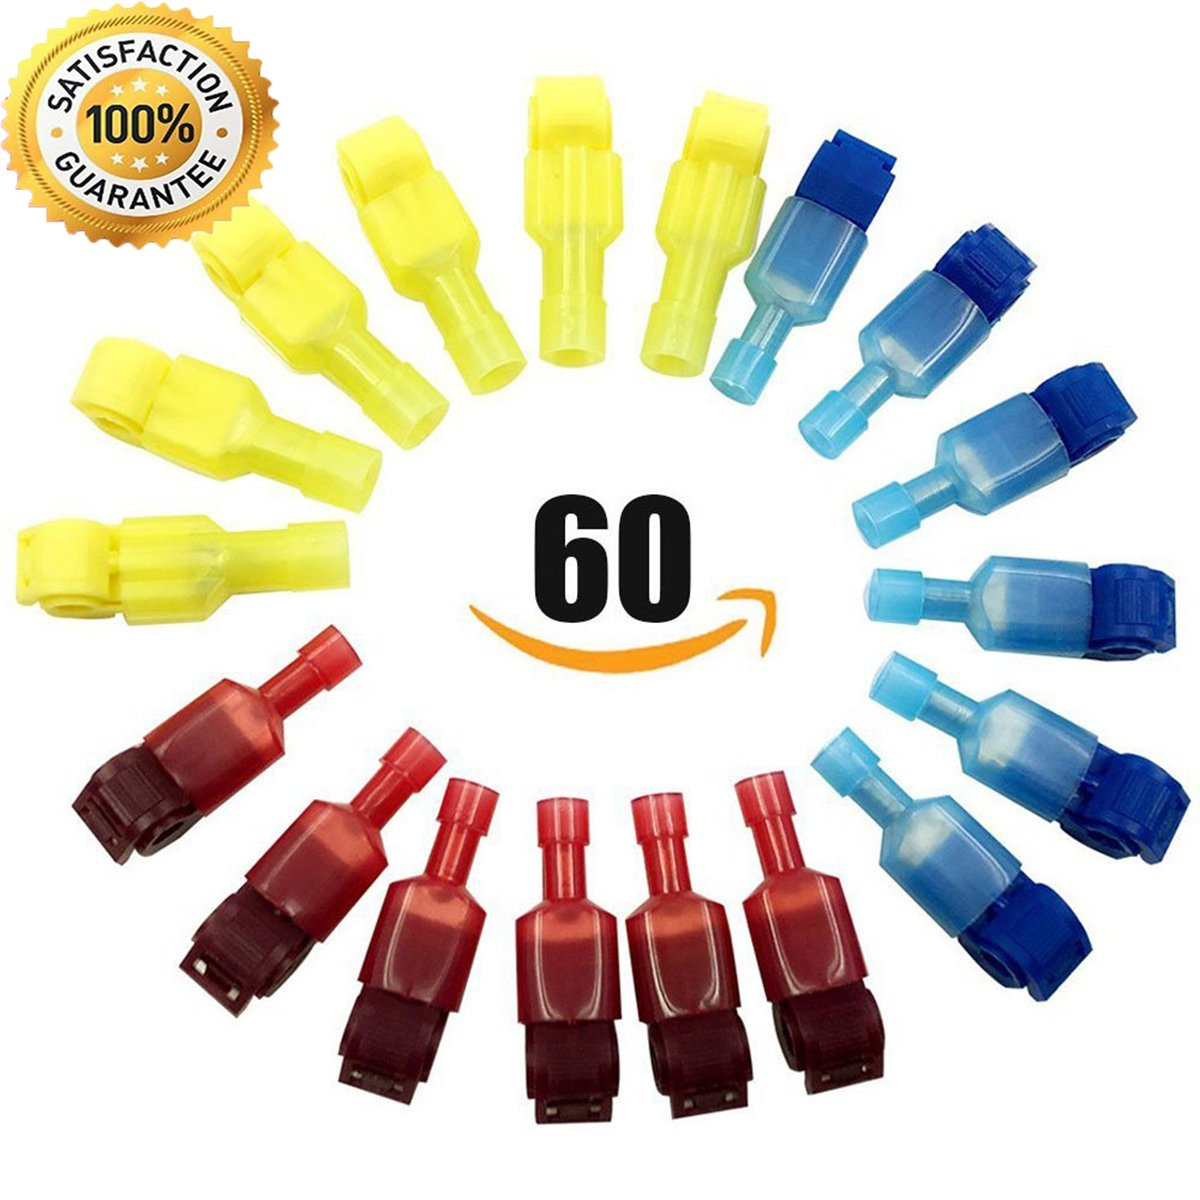 60Pcs Quick Splice Electrical Wire Terminals and T-Tap Nylon Fully Insulated Male Spade Connectors Set by Baleauty (Only for Flexible Wire))